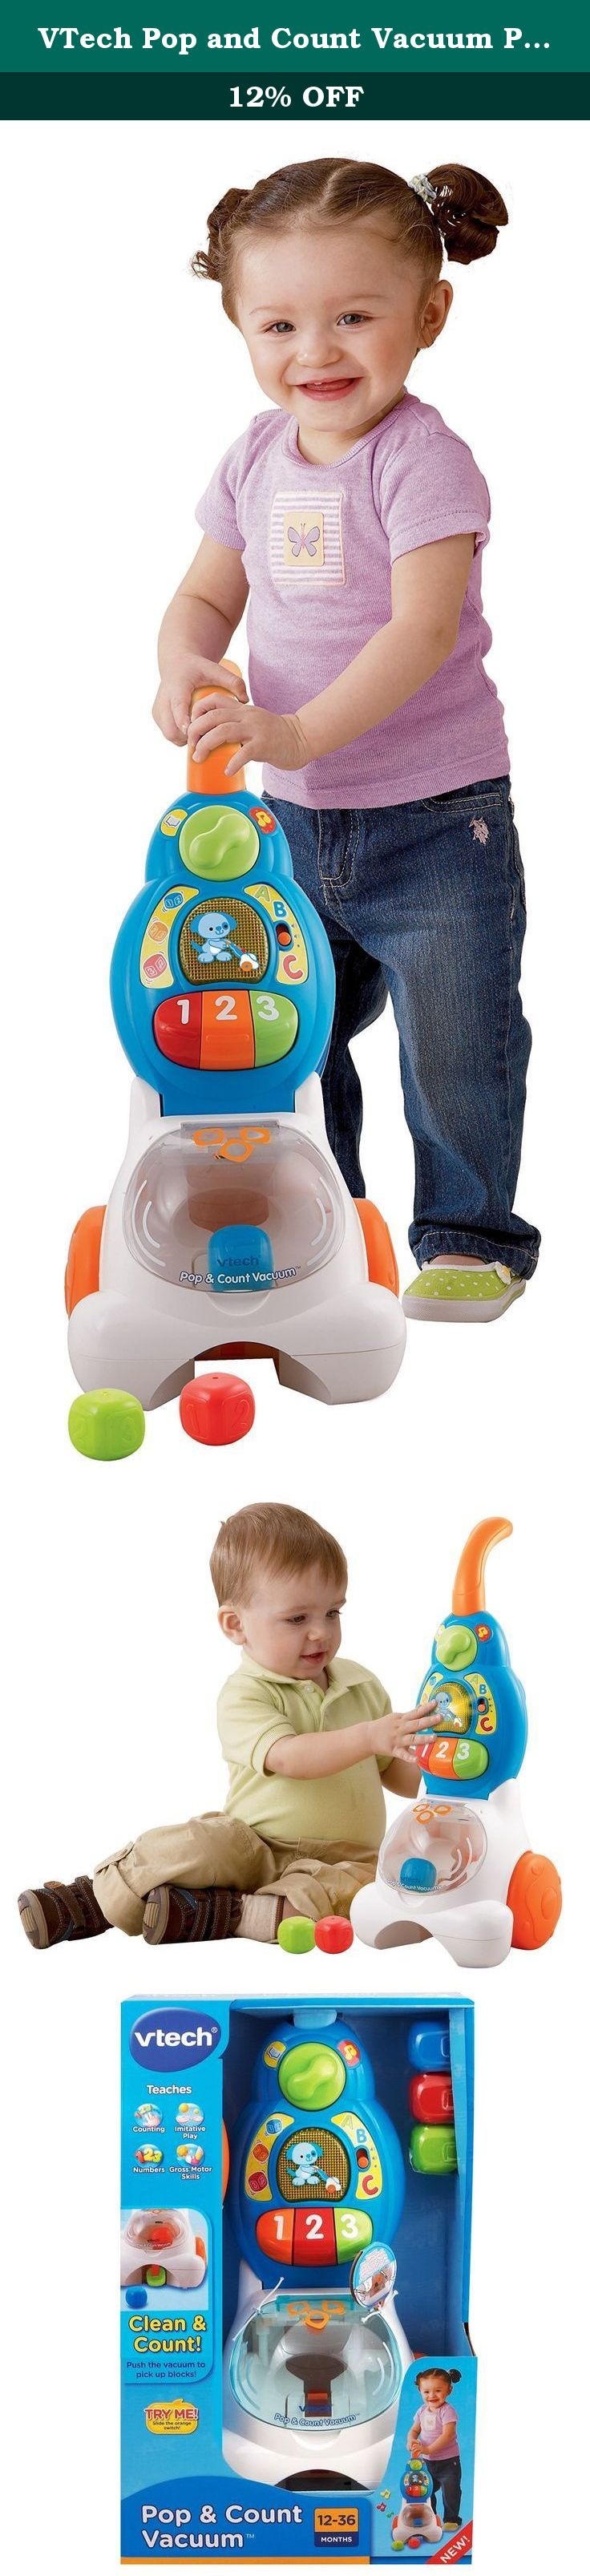 VTech Pop and Count Vacuum Push Toy VTech the creator of the